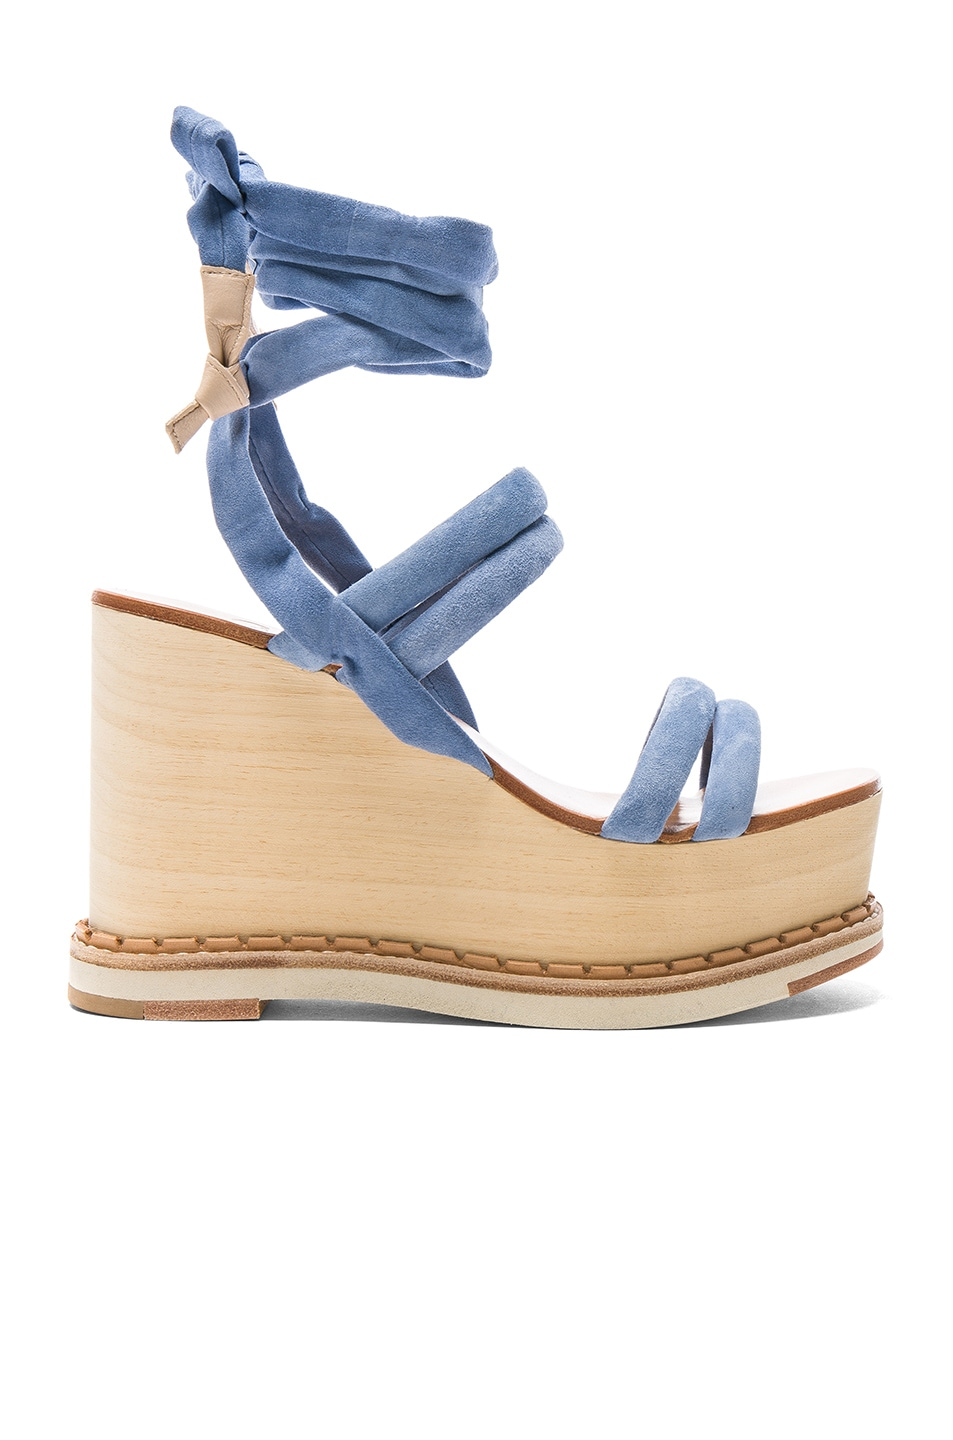 Image 1 of Flamingos Suede Lily Wedges in Blue, Samba & White